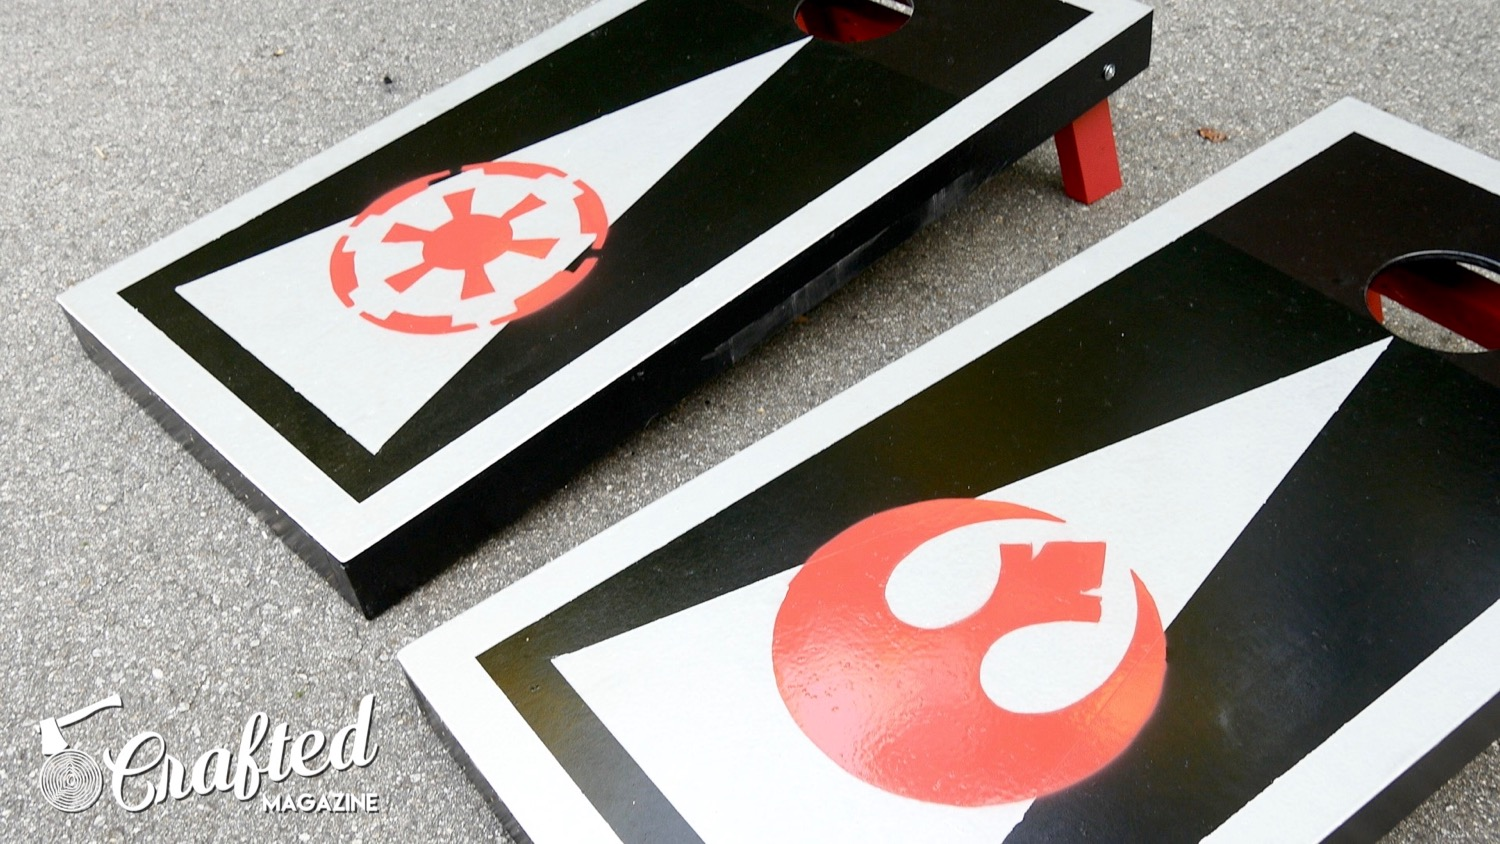 Star-Wars-Cornhole-Boards-How-To-DIY-30.jpg